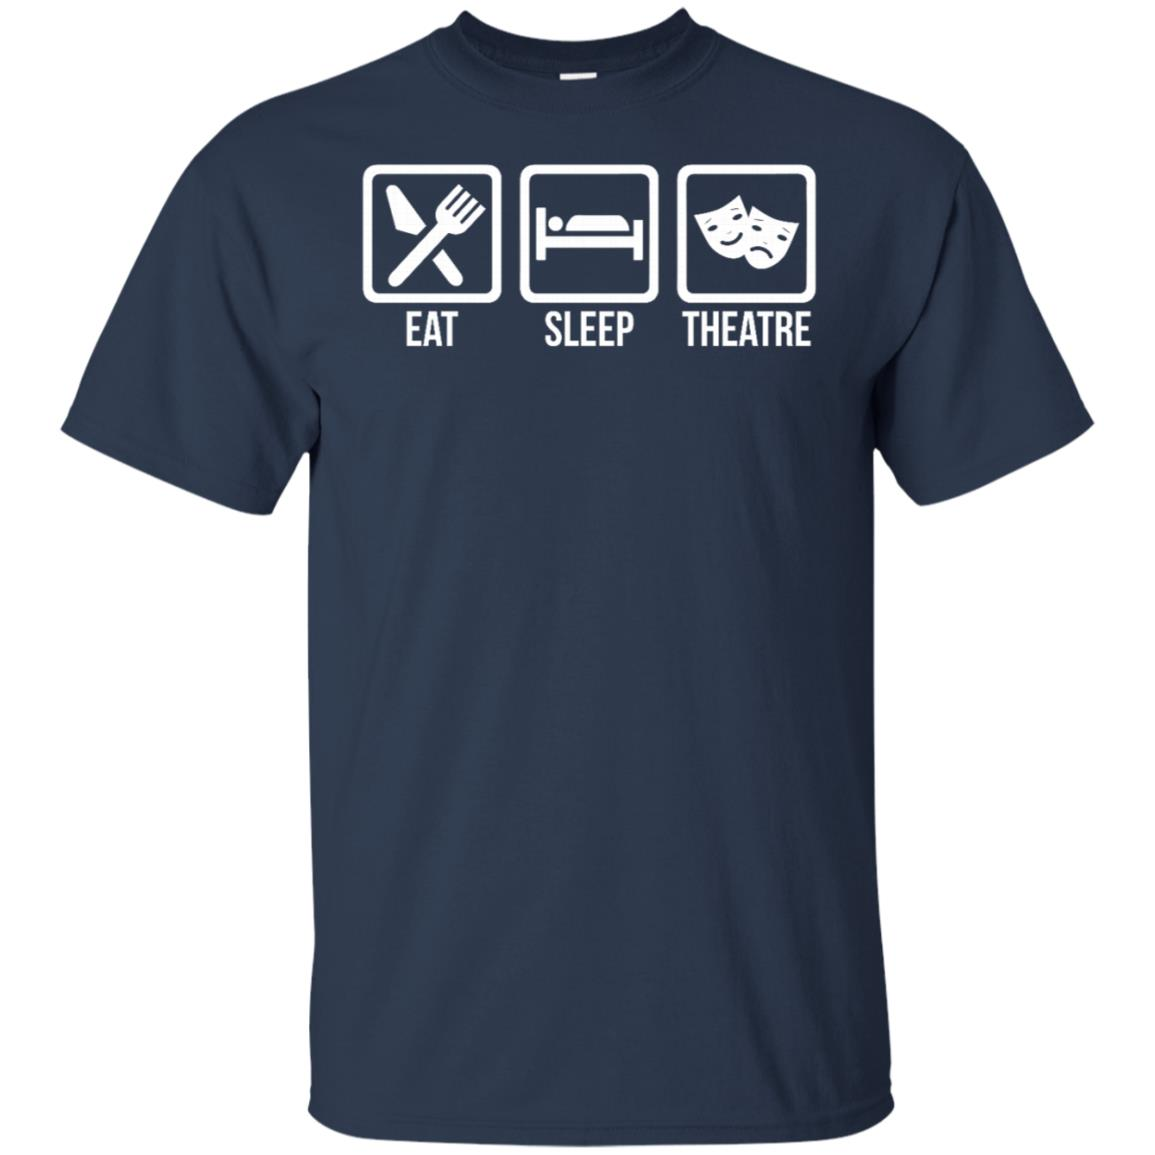 Eat Sleep Theater Cute Repeat Enacting Tee Gift Unisex Short Sleeve